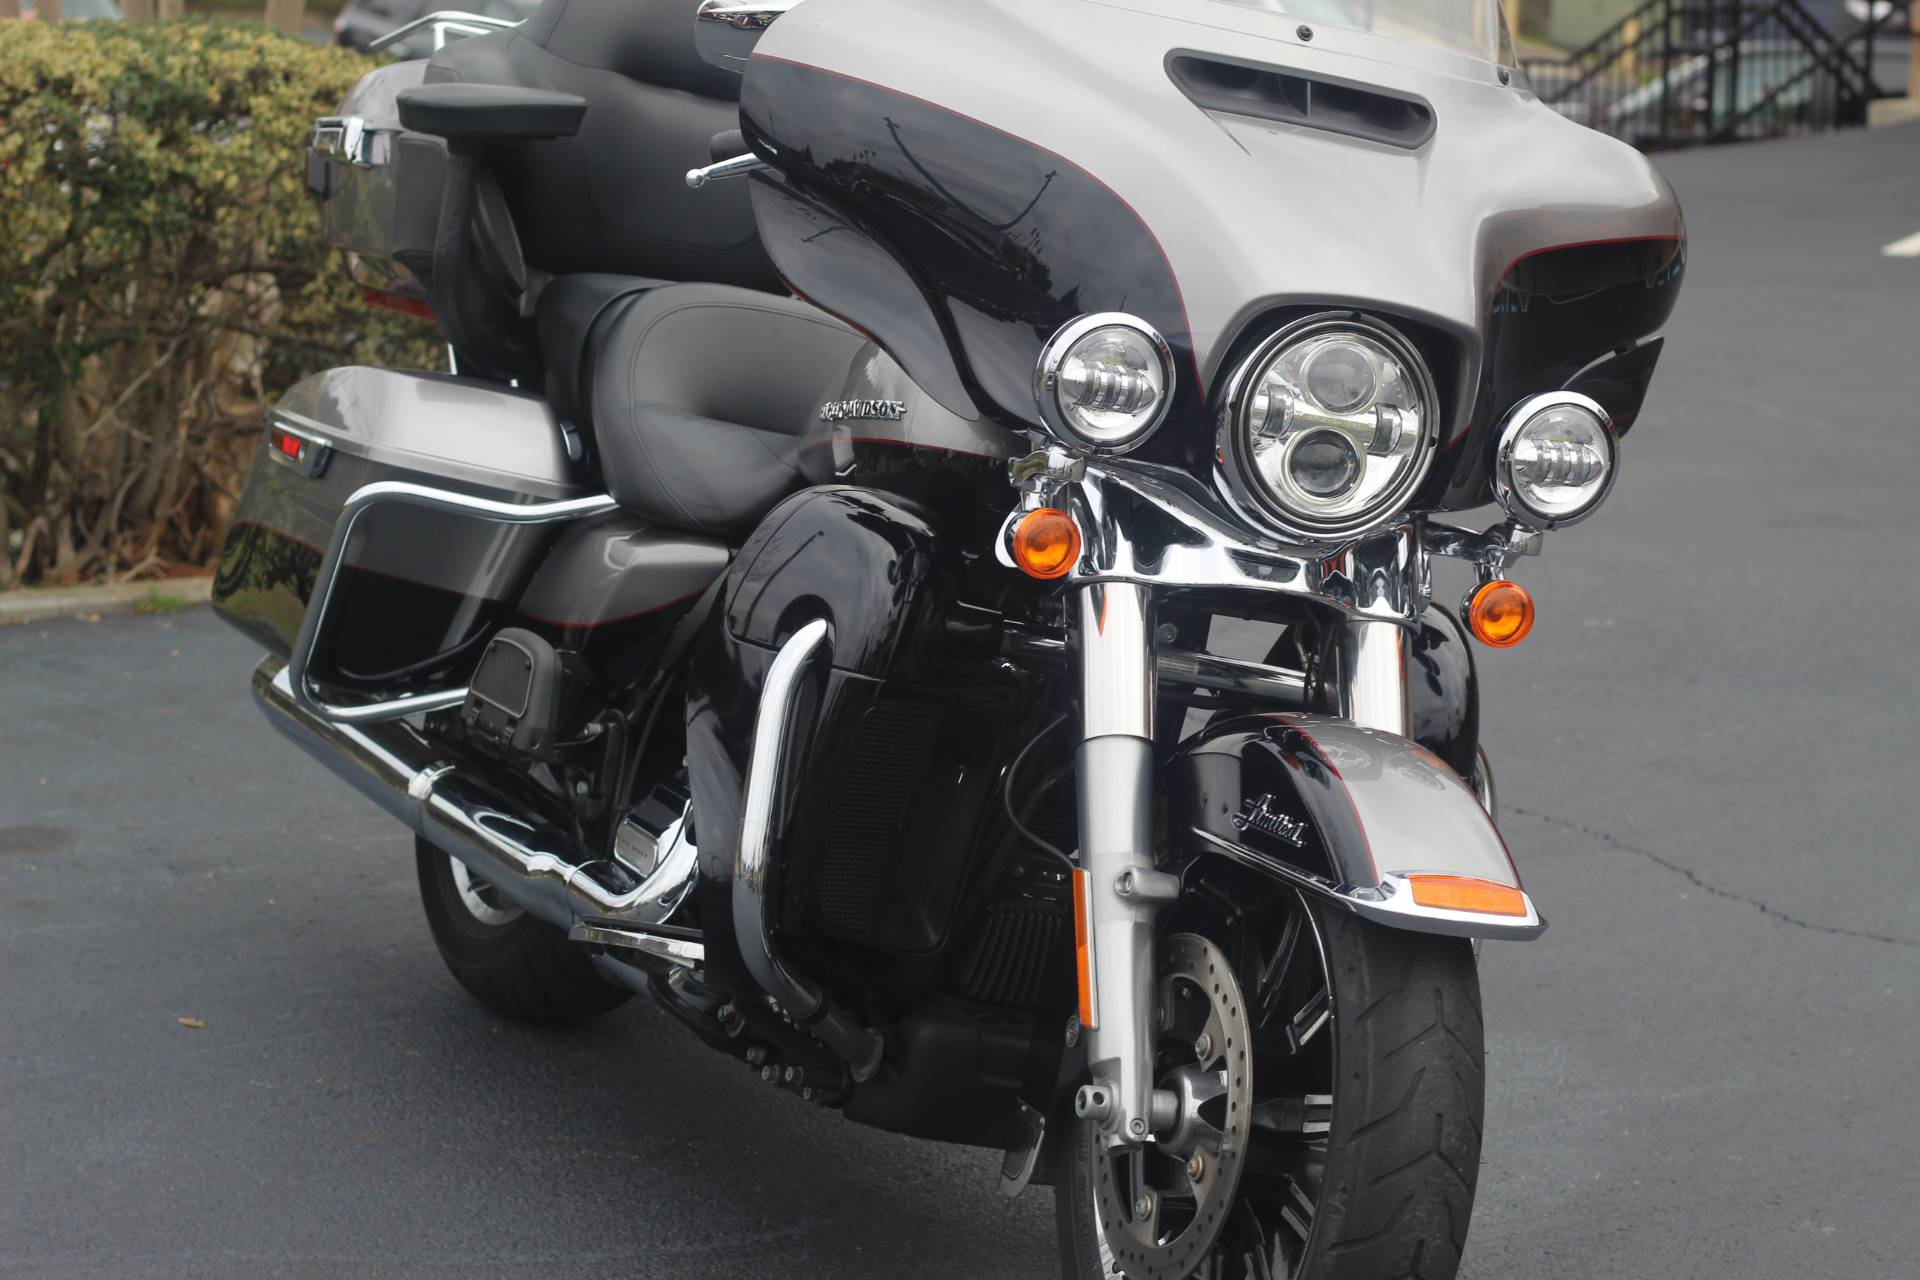 2017 Harley-Davidson Ultra Limited in Marietta, Georgia - Photo 2